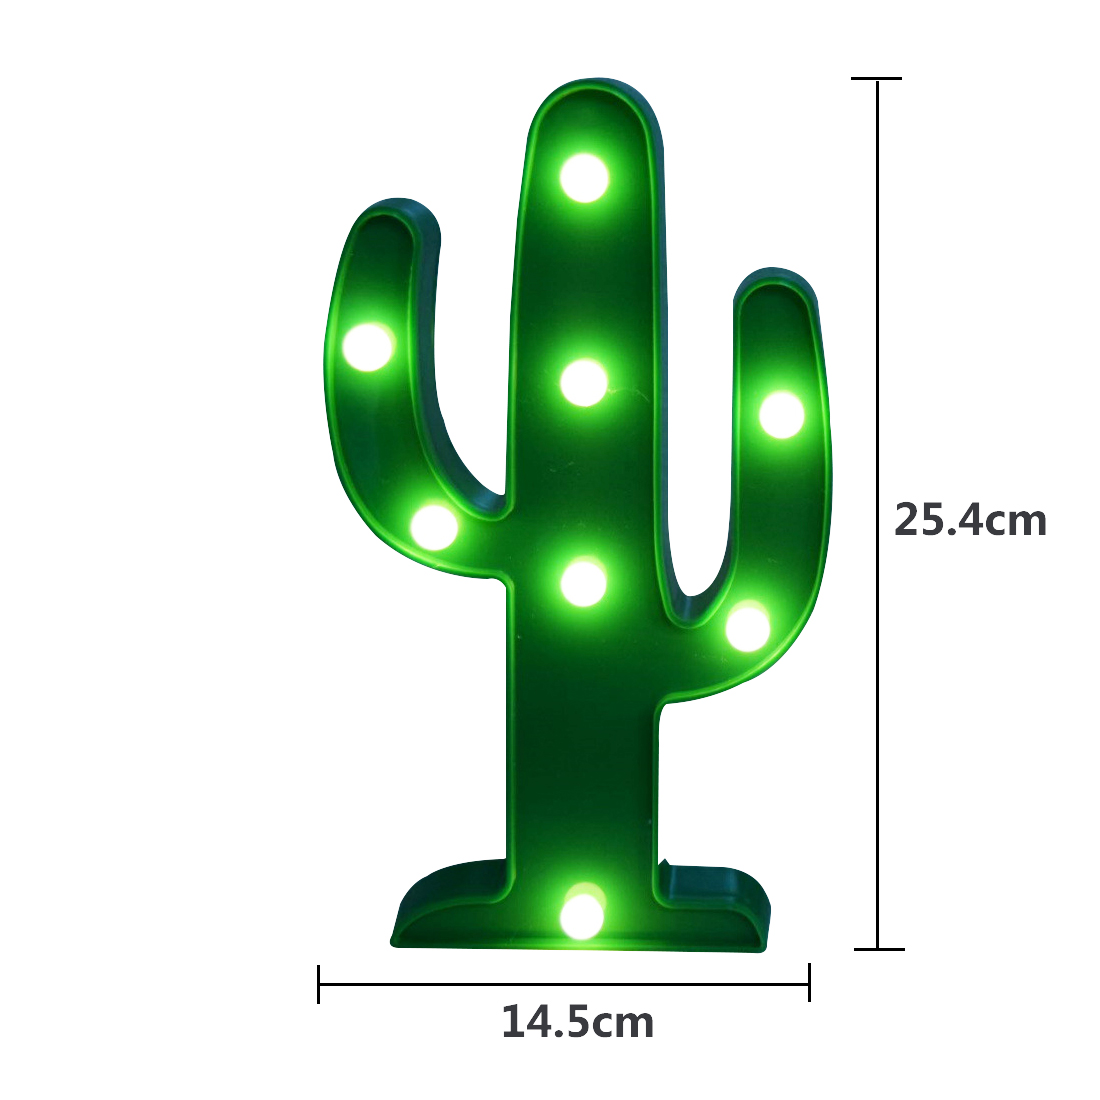 Cute 3D LED Flamingo Lamp Pineapple Cactus Clouds Nightlight Romantic Light Table Lamp For Christmas Decorations Home Decor jiaderui usb rechargeable battery neon lamp new year christmas wedding decor lamp flamingo cactus moon cloud led home nightlight